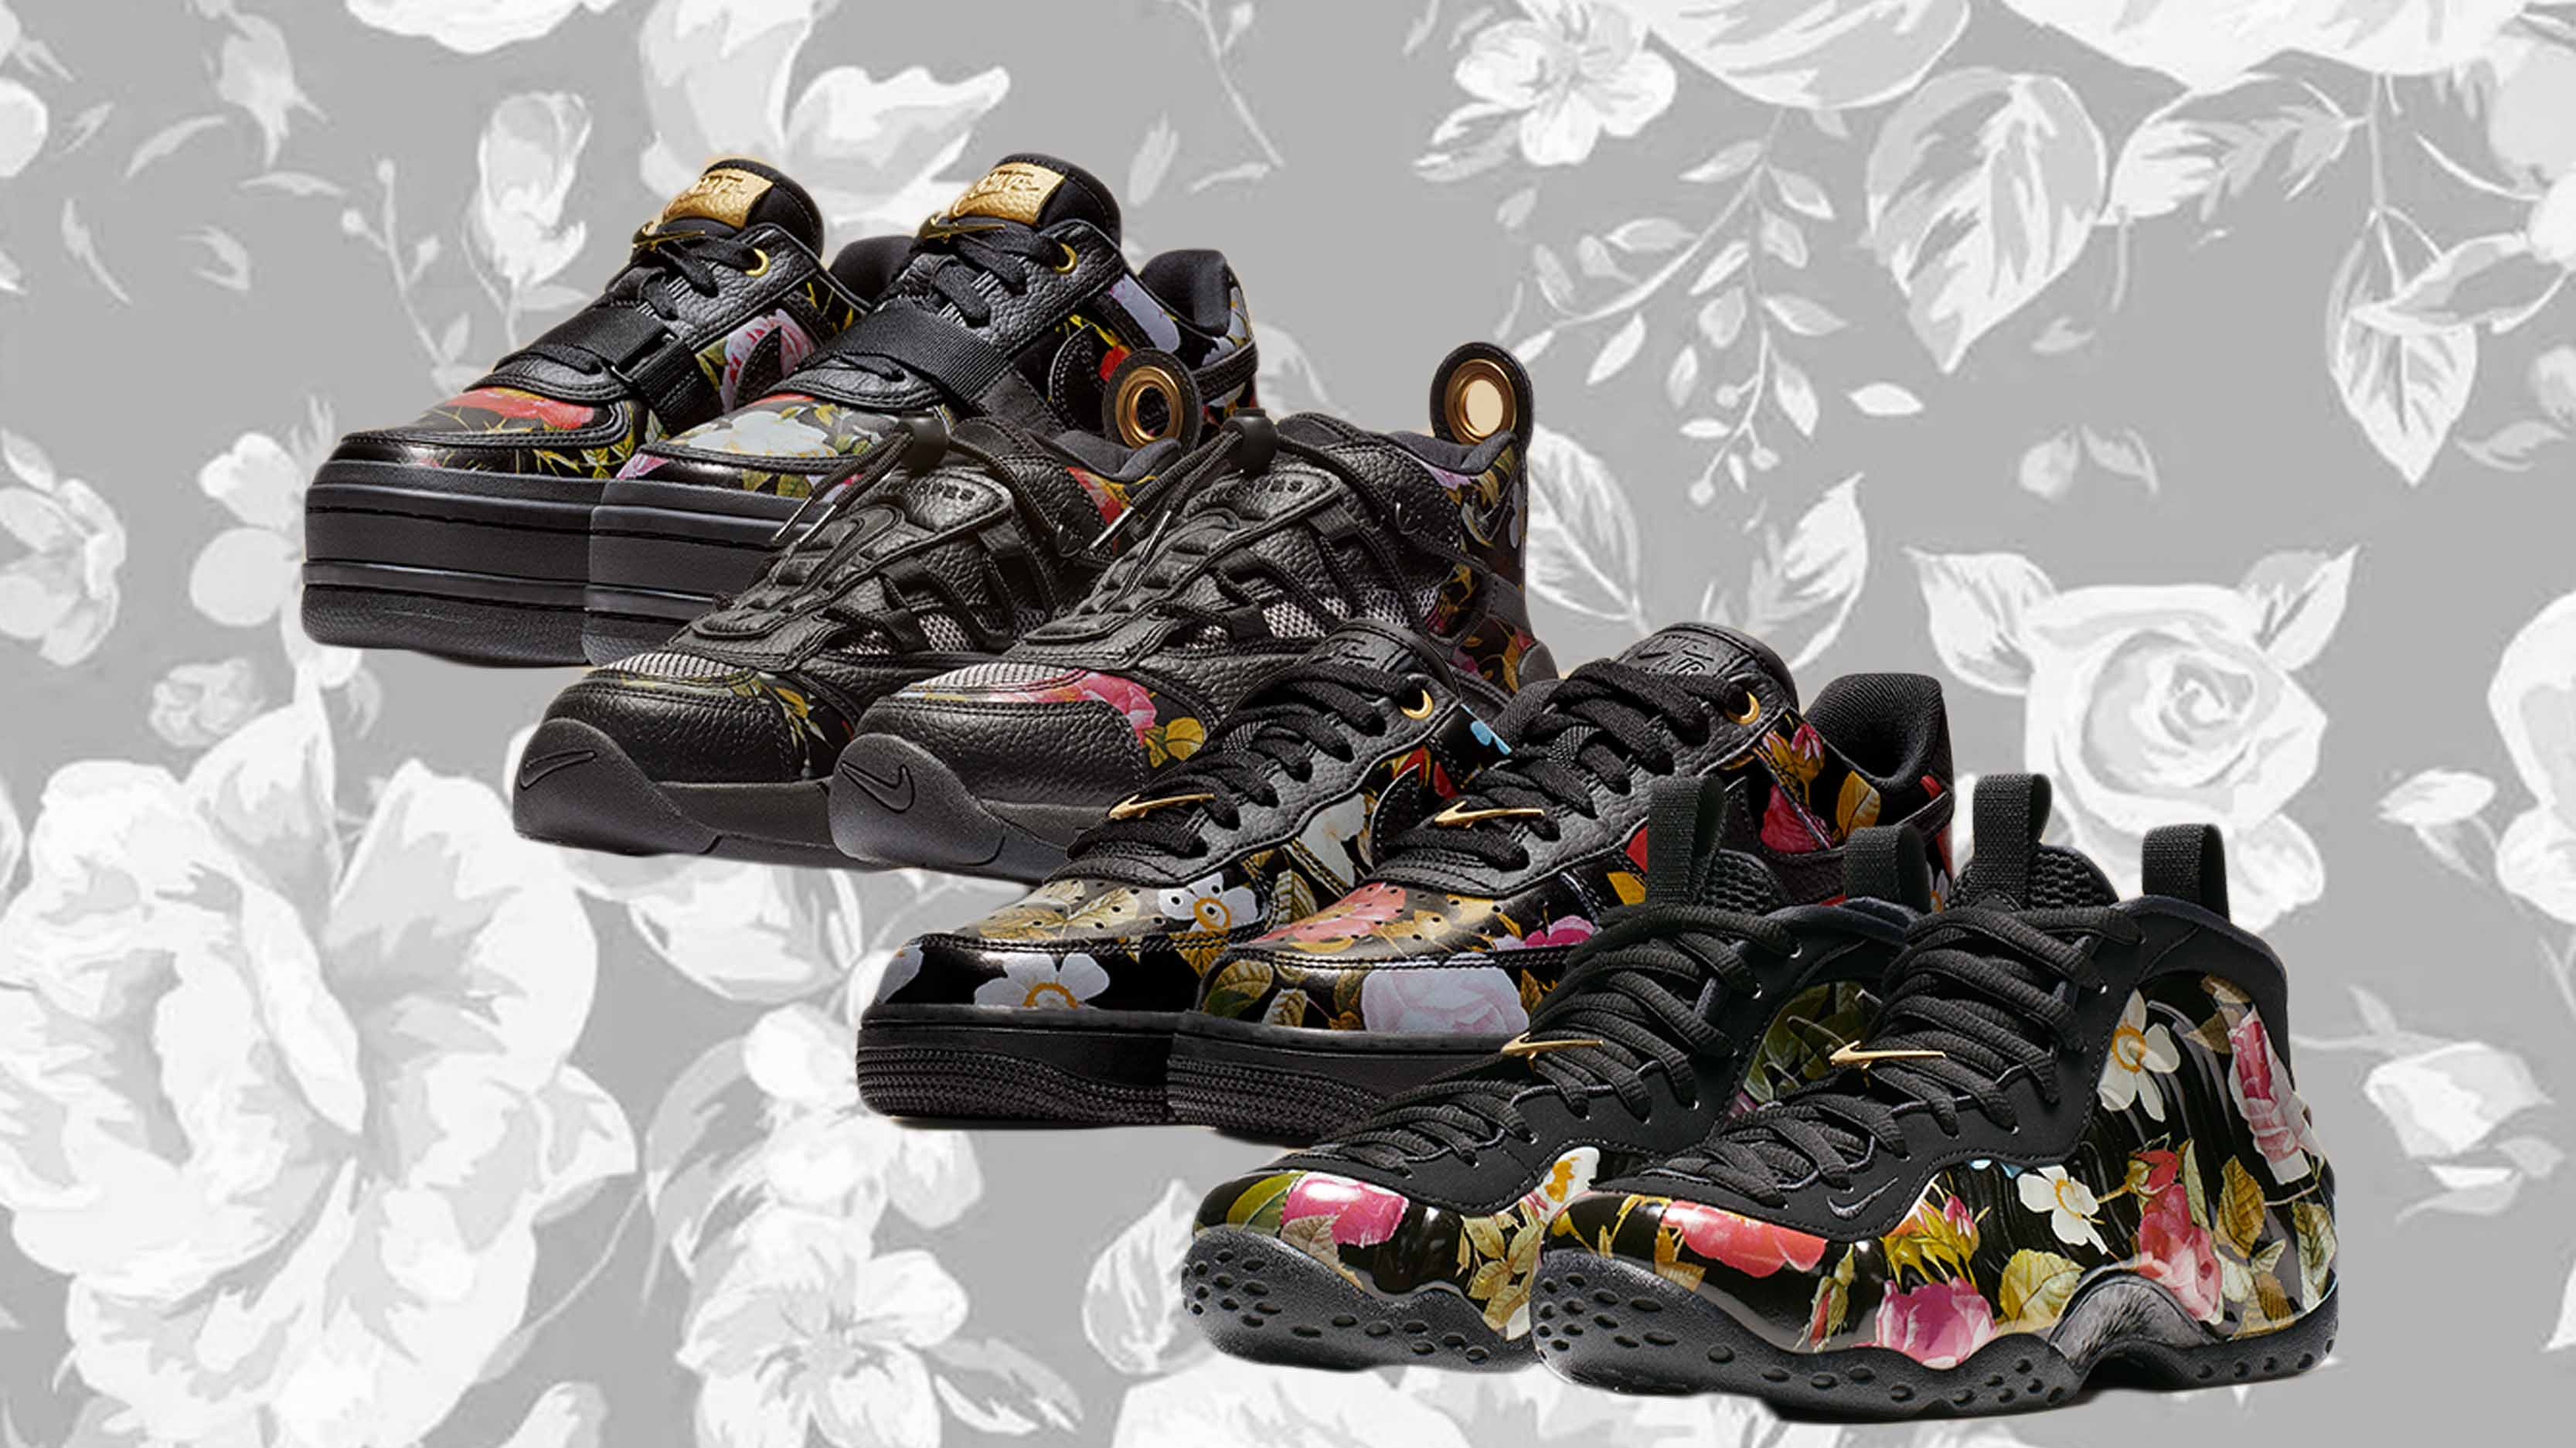 683dc9a9b4c34 Floral Tones Decorate Nike's Valentine's Day Pack | Upcoming Sneaker  Releases | The Sole Womens